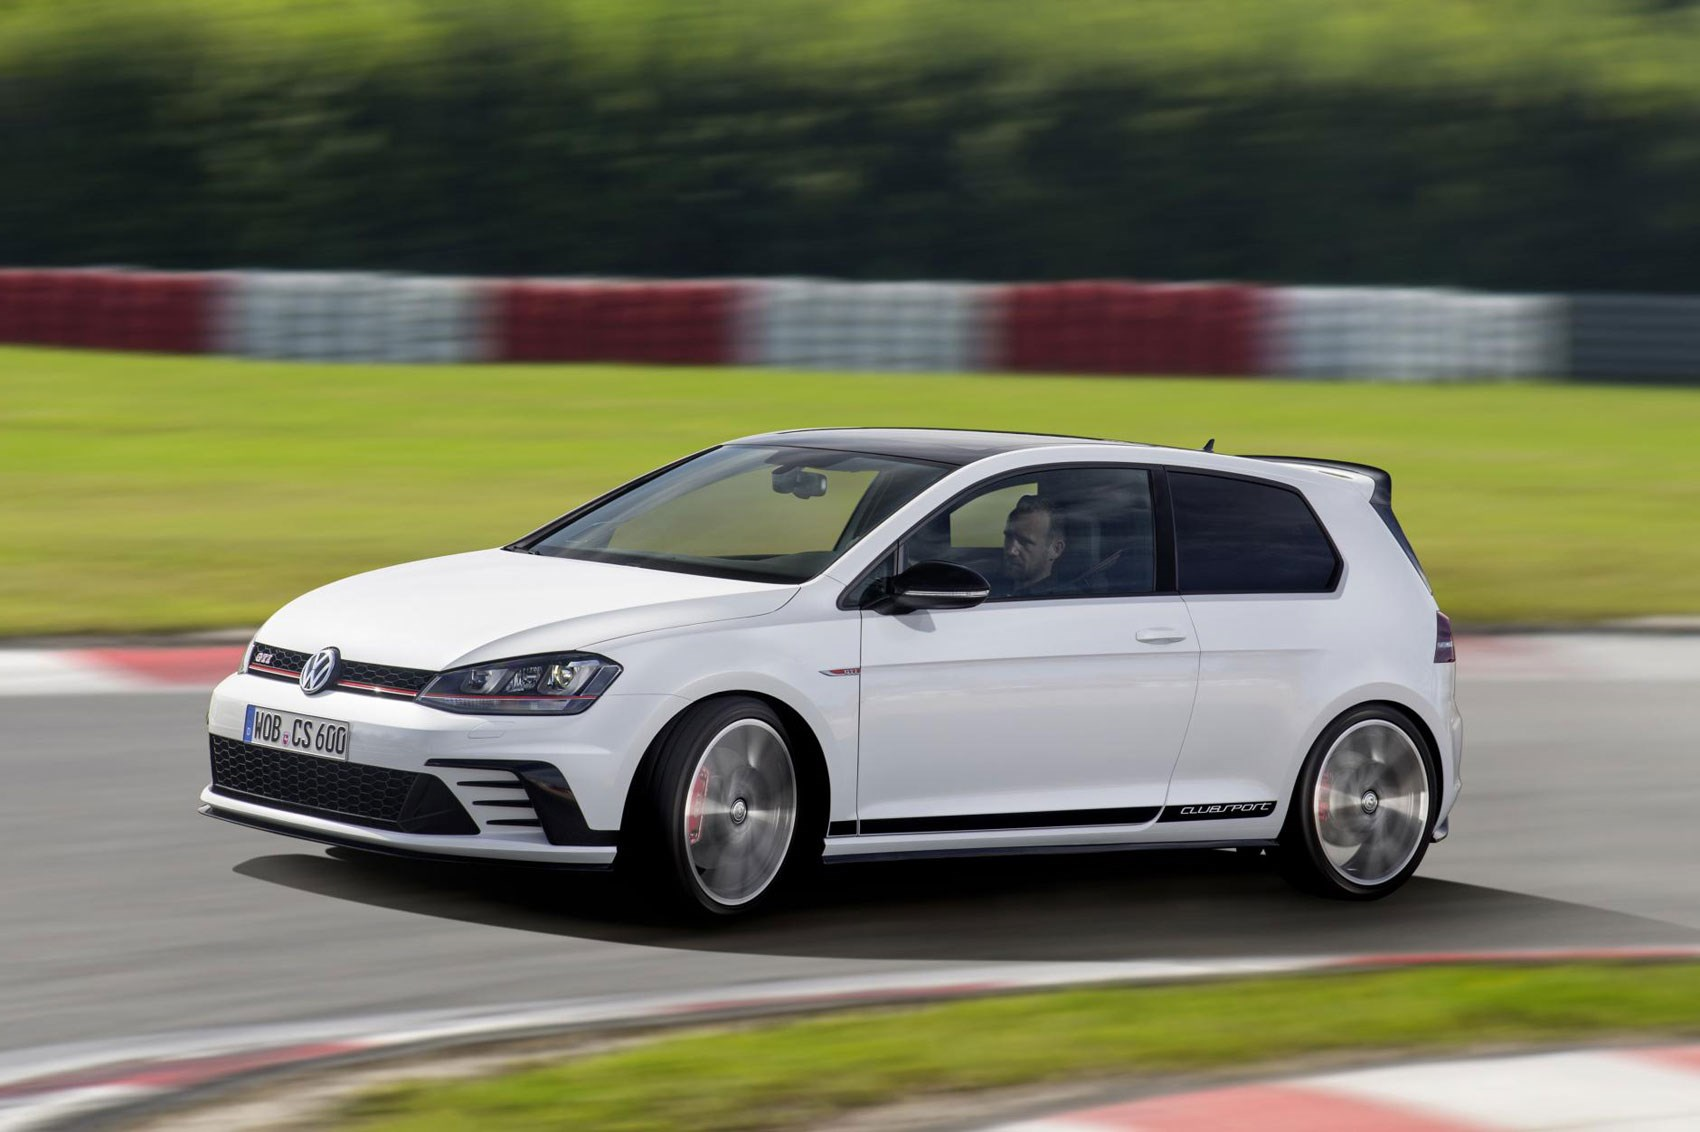 2016 Volkswagen Golf GTI Clubsport Performance Test